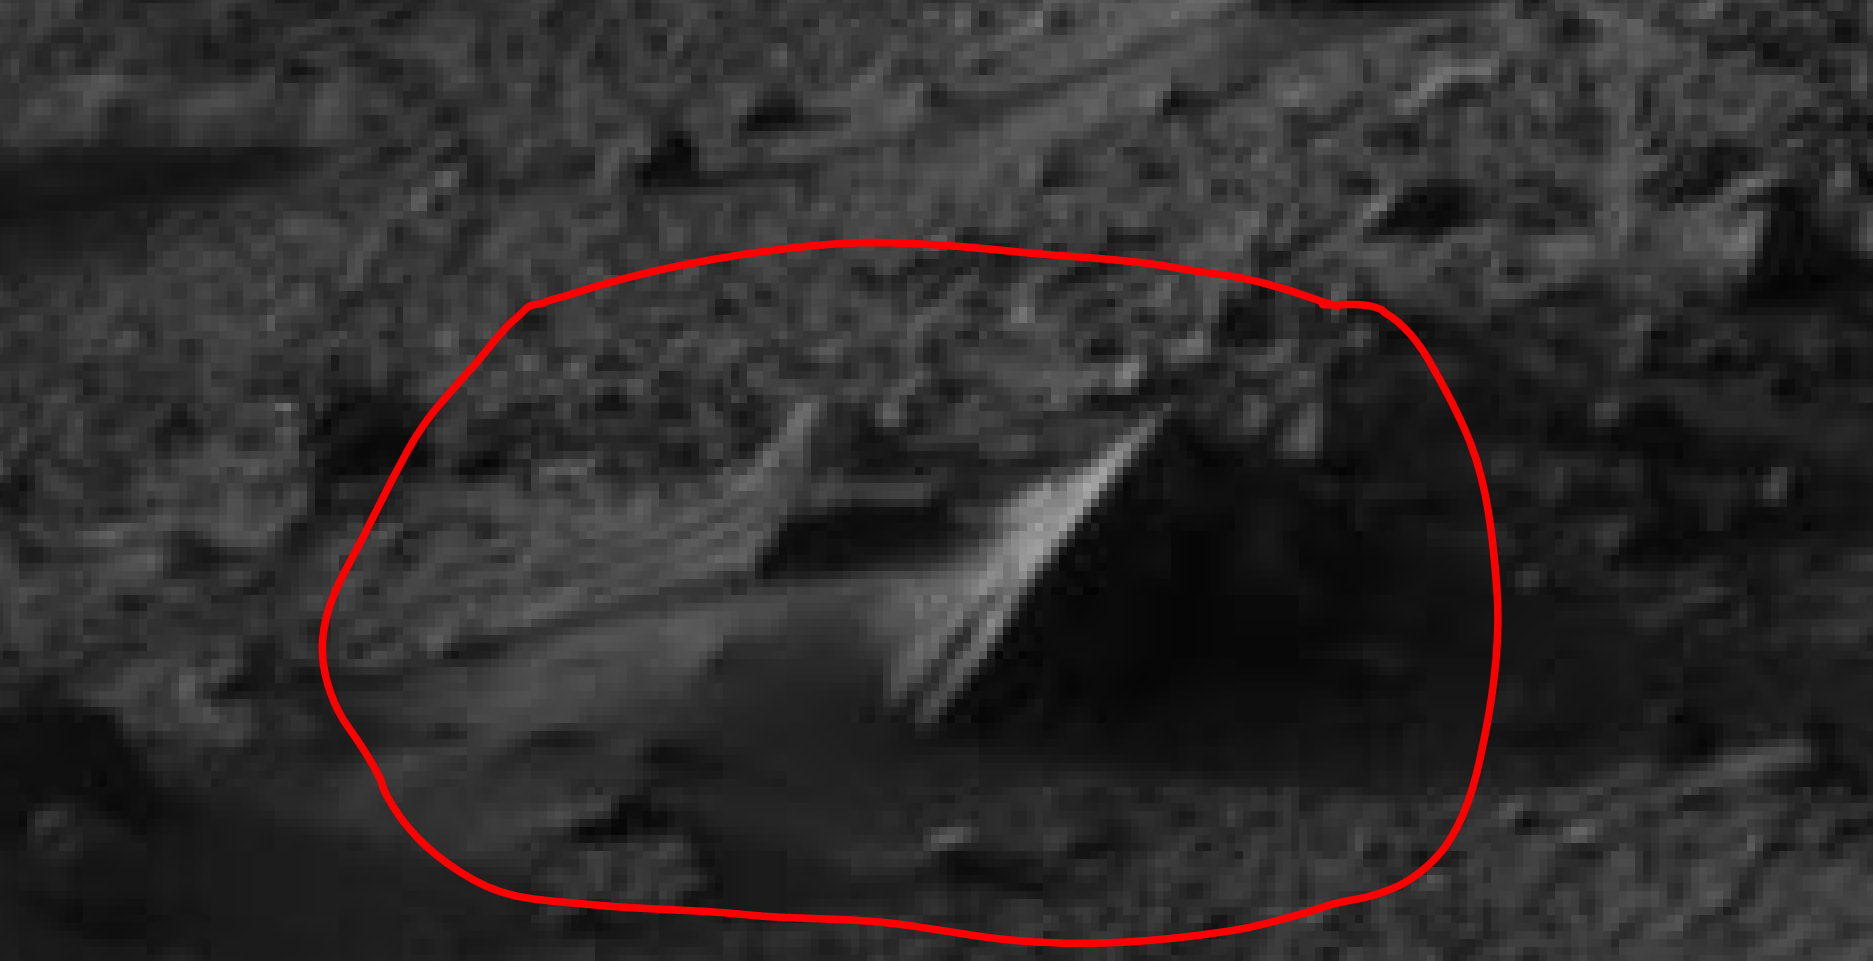 mars sol 1405 anomaly artifacts 21 was life on mars